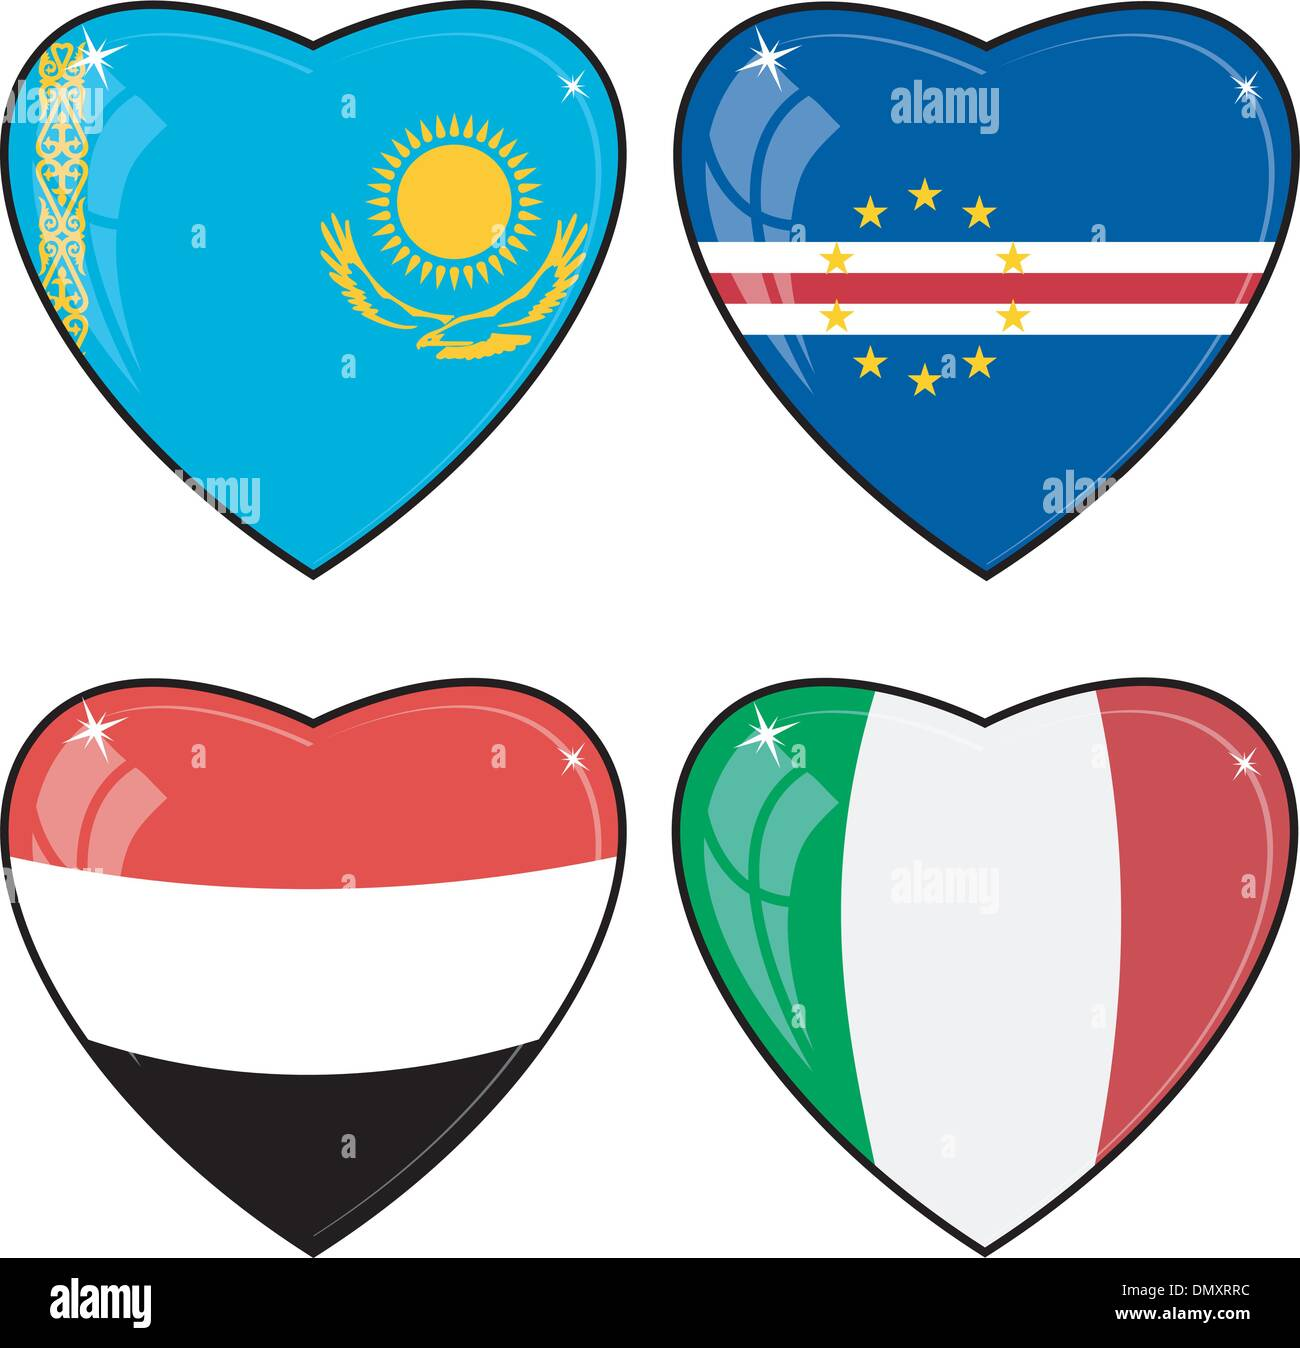 Set of vector images of hearts with the flags - Stock Vector